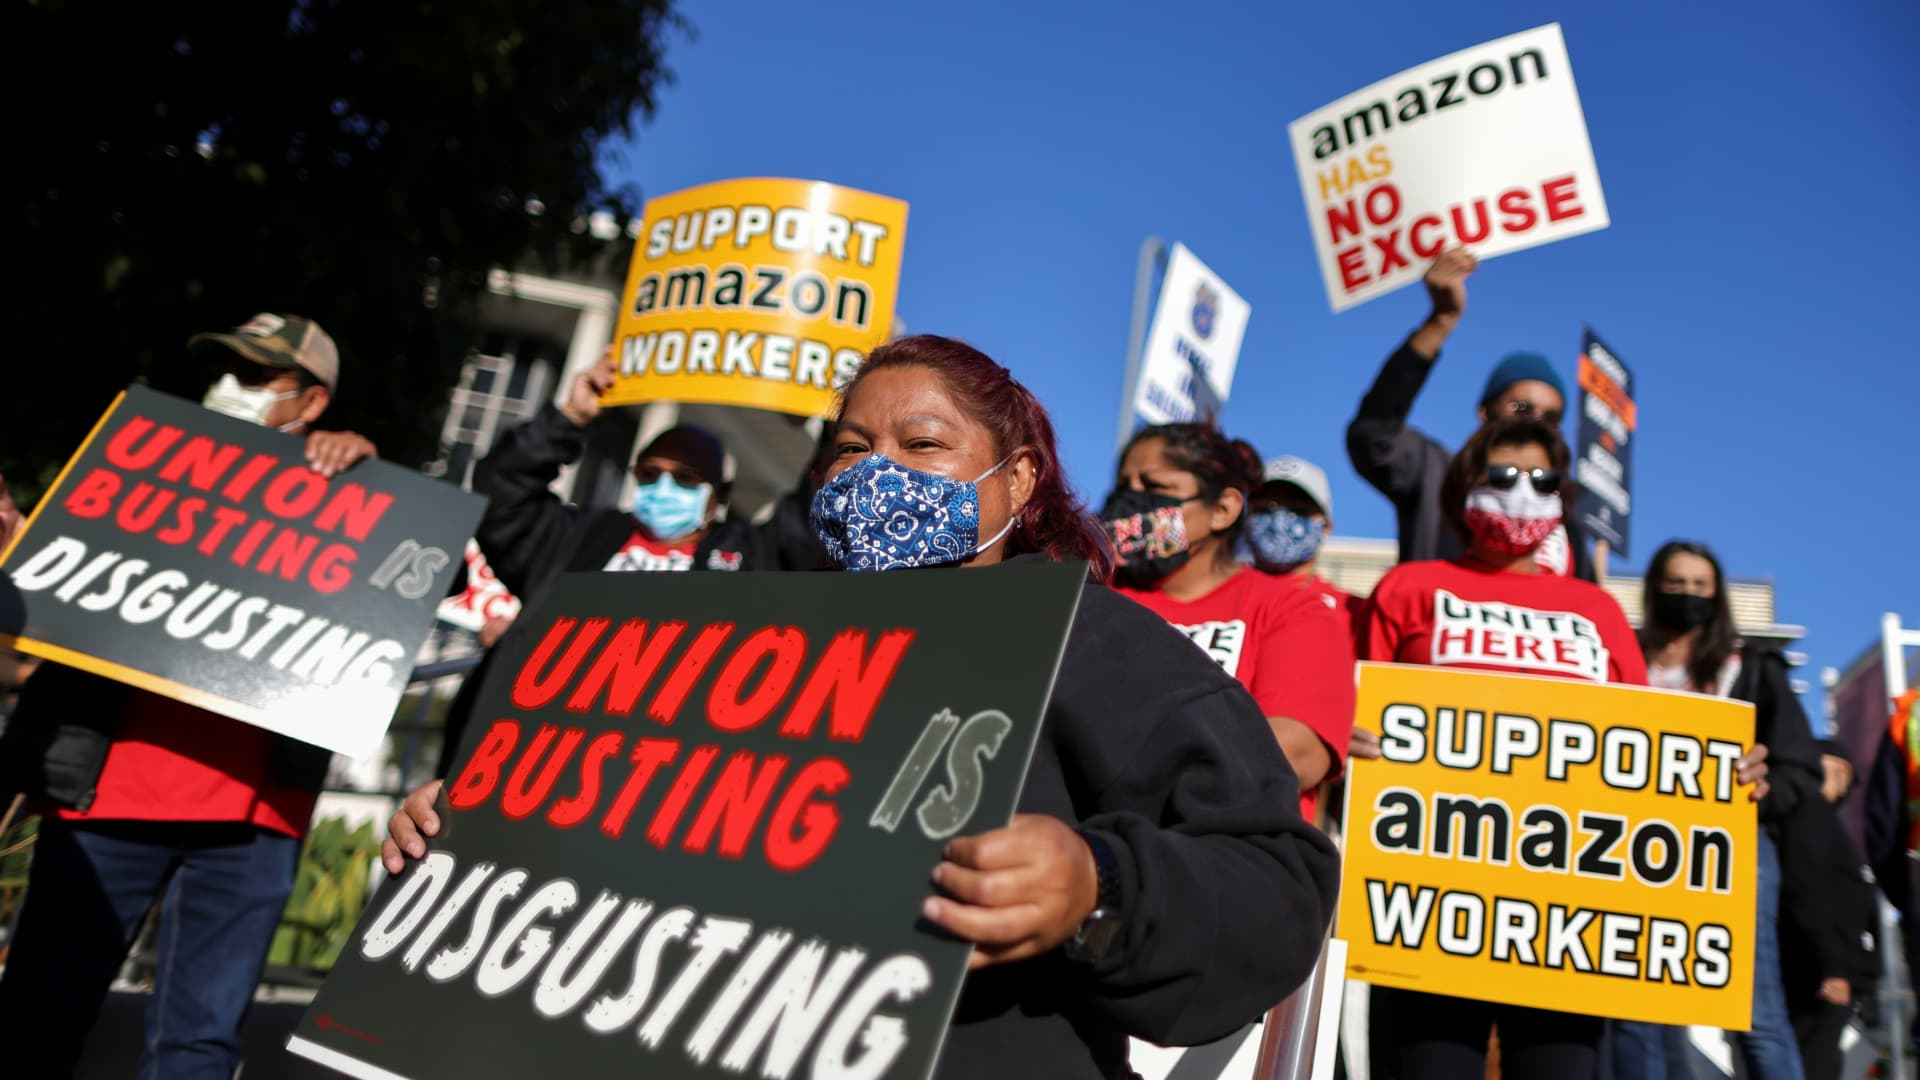 People protest in support of the unionizing efforts of the Alabama Amazon workers, in Los Angeles, California, March 22, 2021.